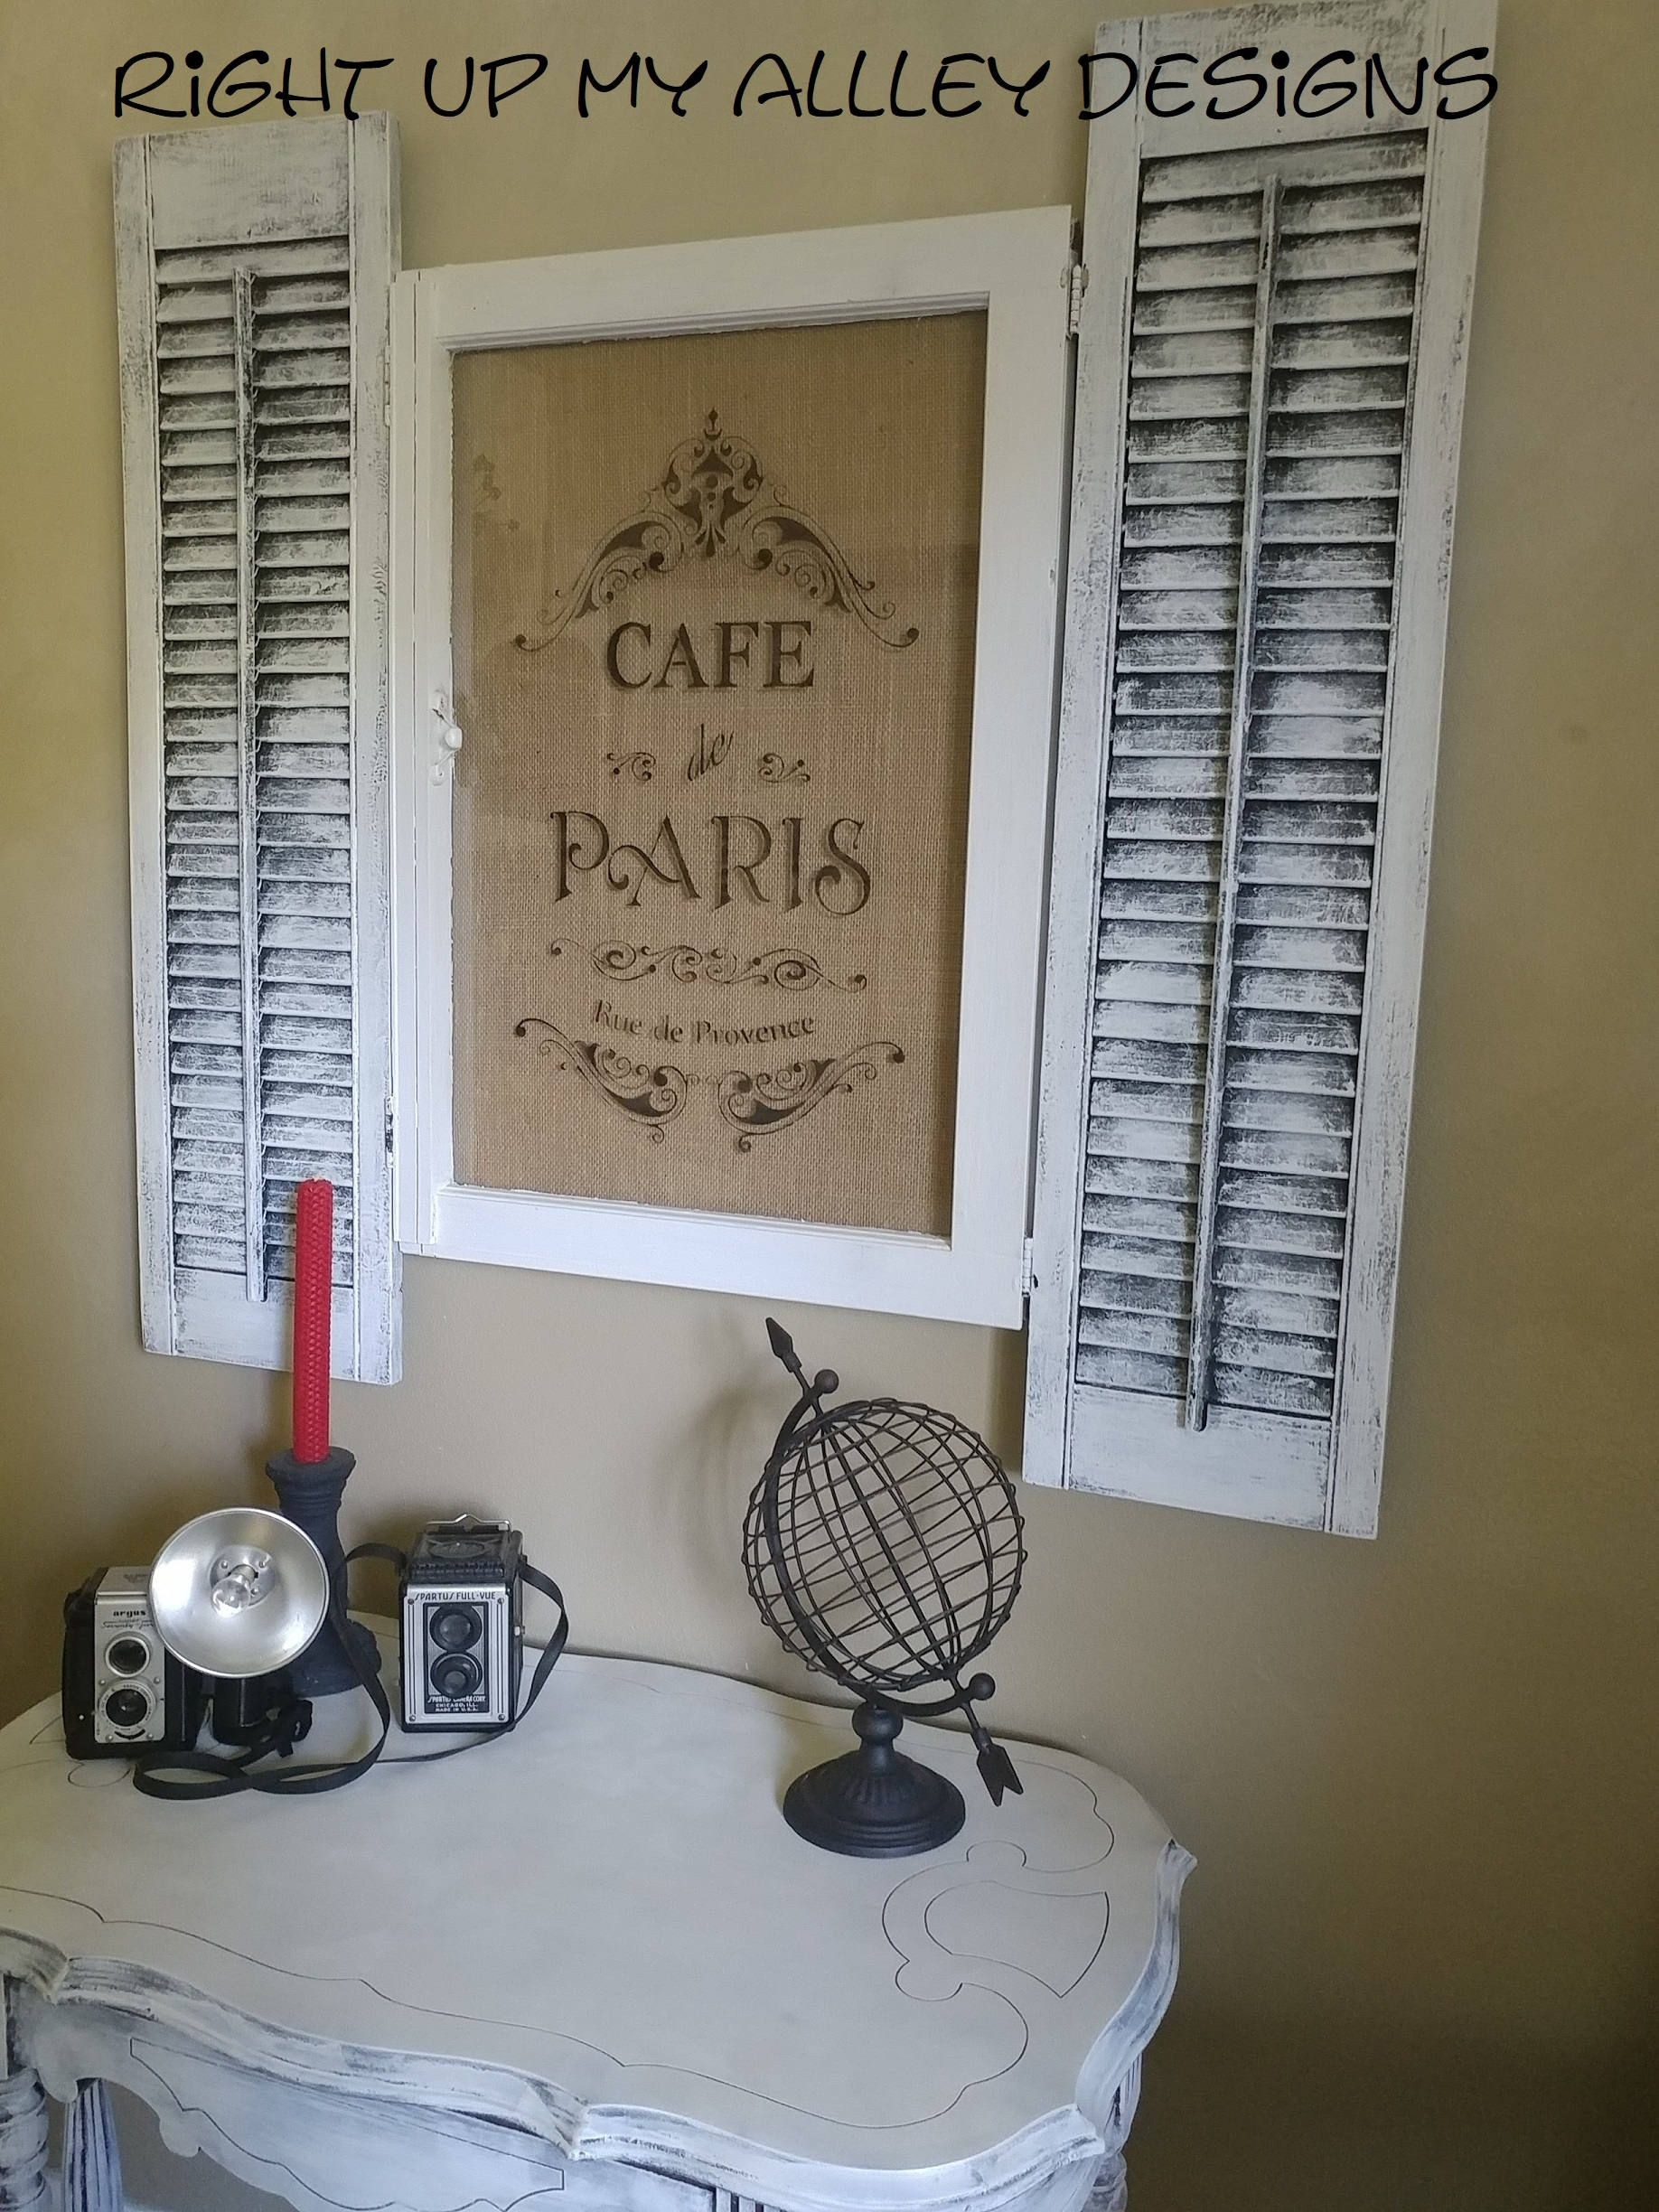 Window and shutter decorfrench cafefrench decorshabby chiccafe de paris stencil burlapold window decorwindow artwindow pane art by